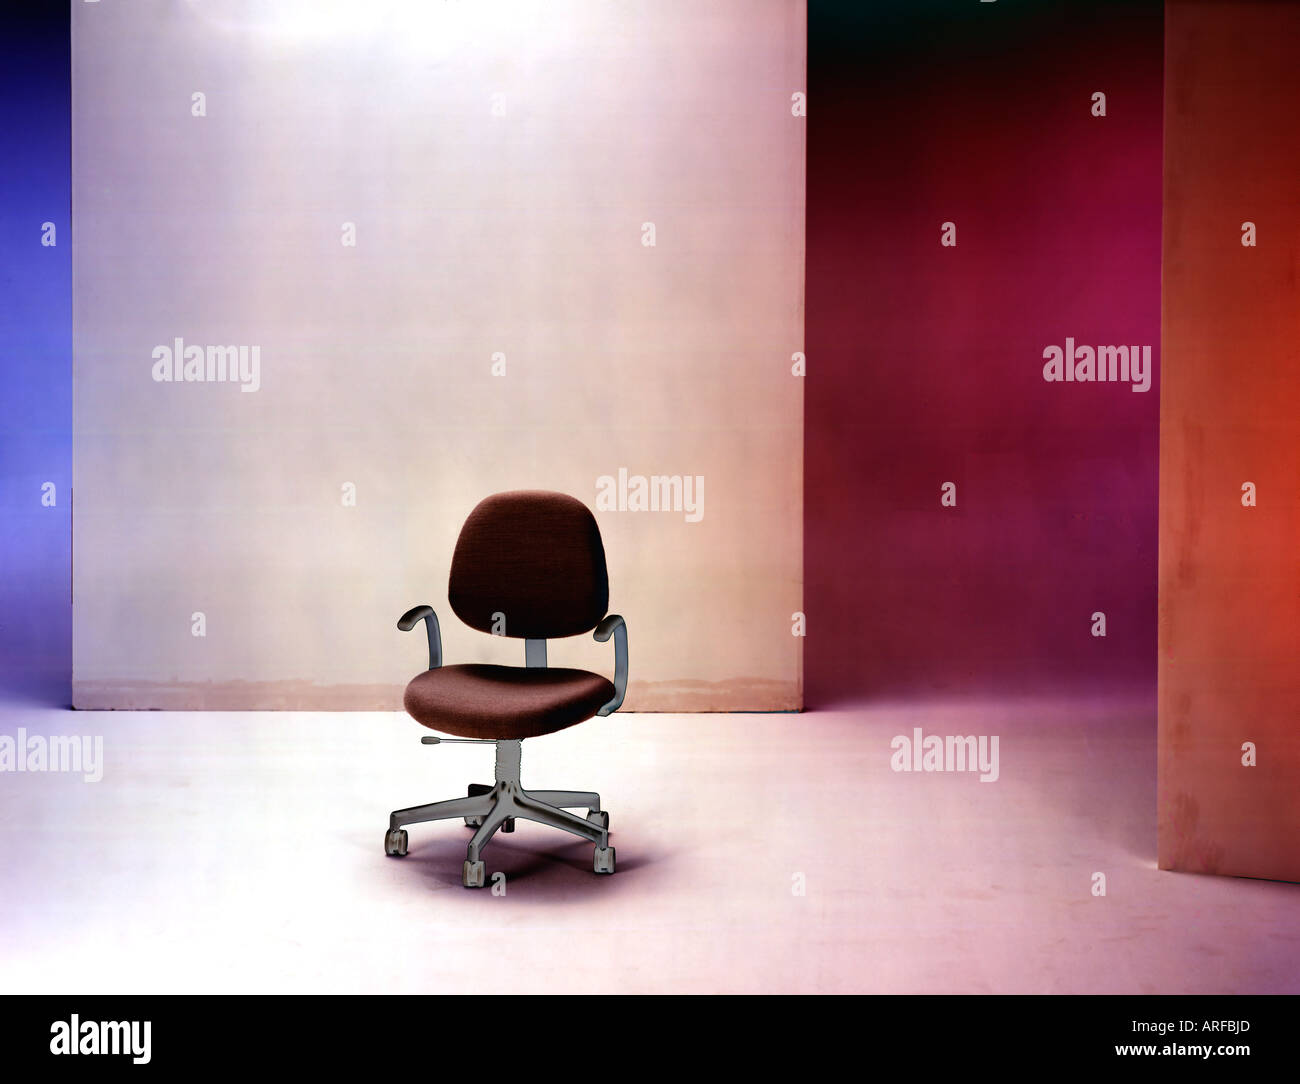 Cool Abstract Business Furniture Chair Stock Photo 9164652 Alamy Download Free Architecture Designs Embacsunscenecom